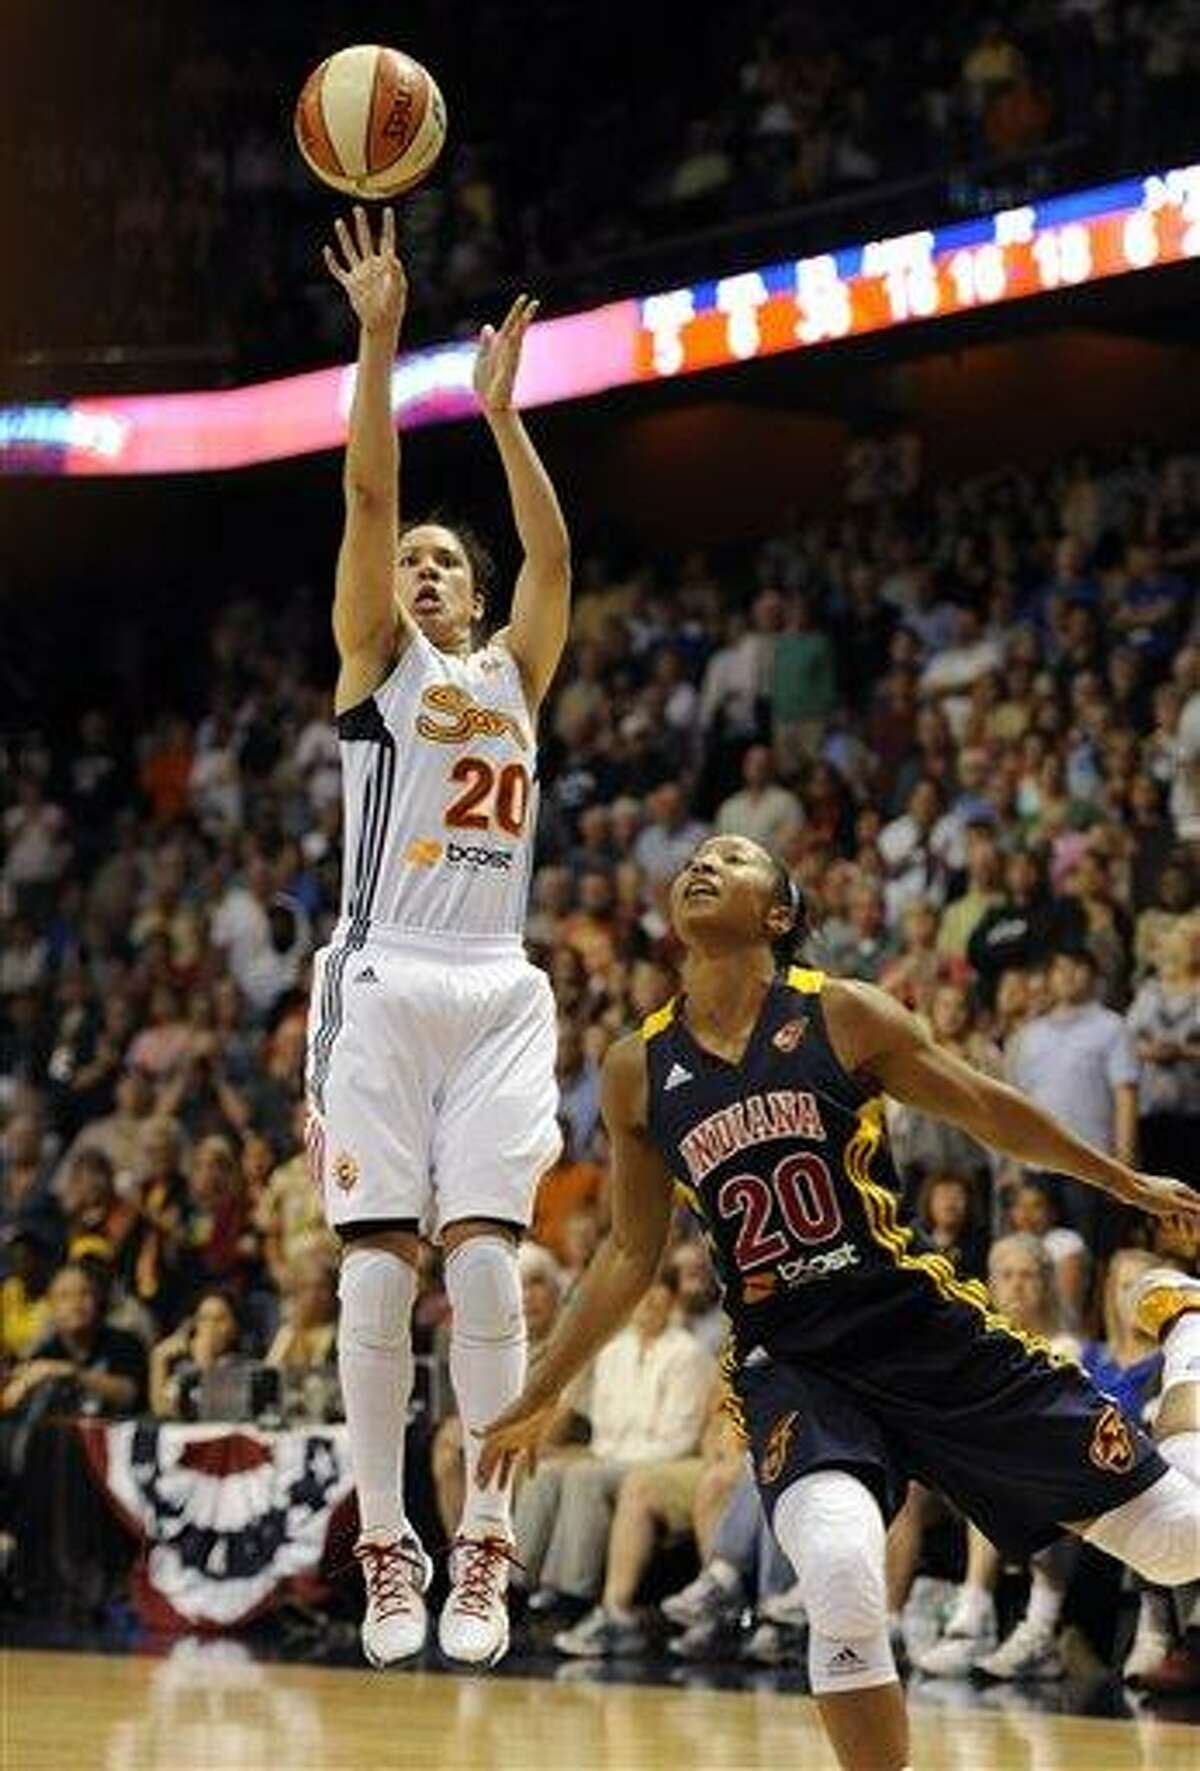 Connecticut Sun's Kara Lawson releases the game-winning shot while guarded by Indiana Fever's Briann January in overtime of a WNBA basketball game in Uncasville, Conn., Tuesday, June 19, 2012. Connecticut won 88-85. (AP Photo/Jessica Hill)